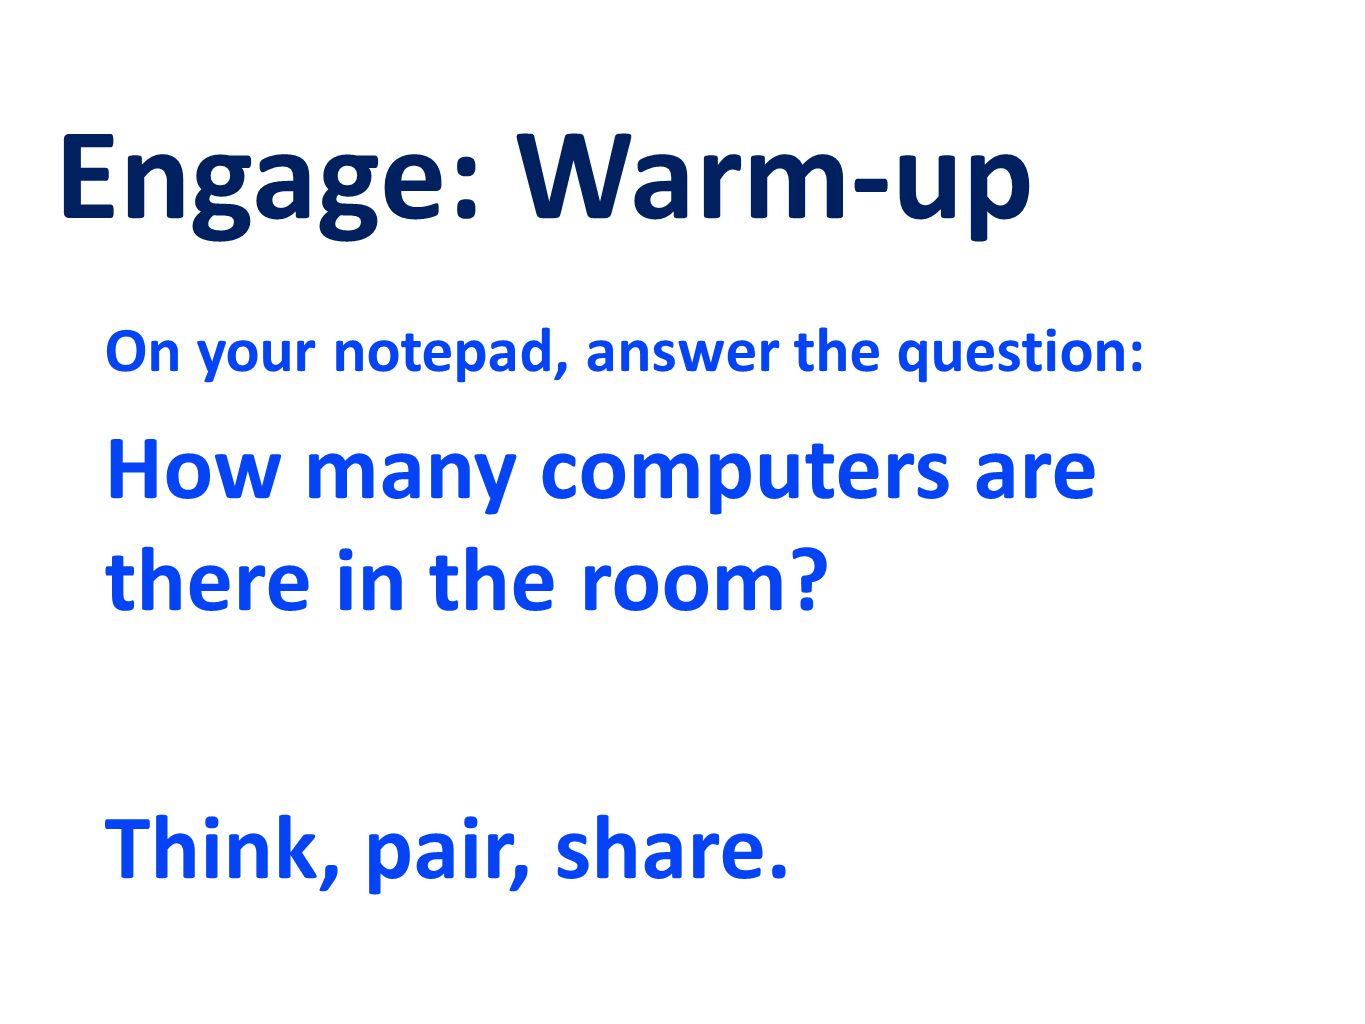 Engage: Warm-up On your notepad, answer the question: How many computers are there in the room? Think, pair, share.